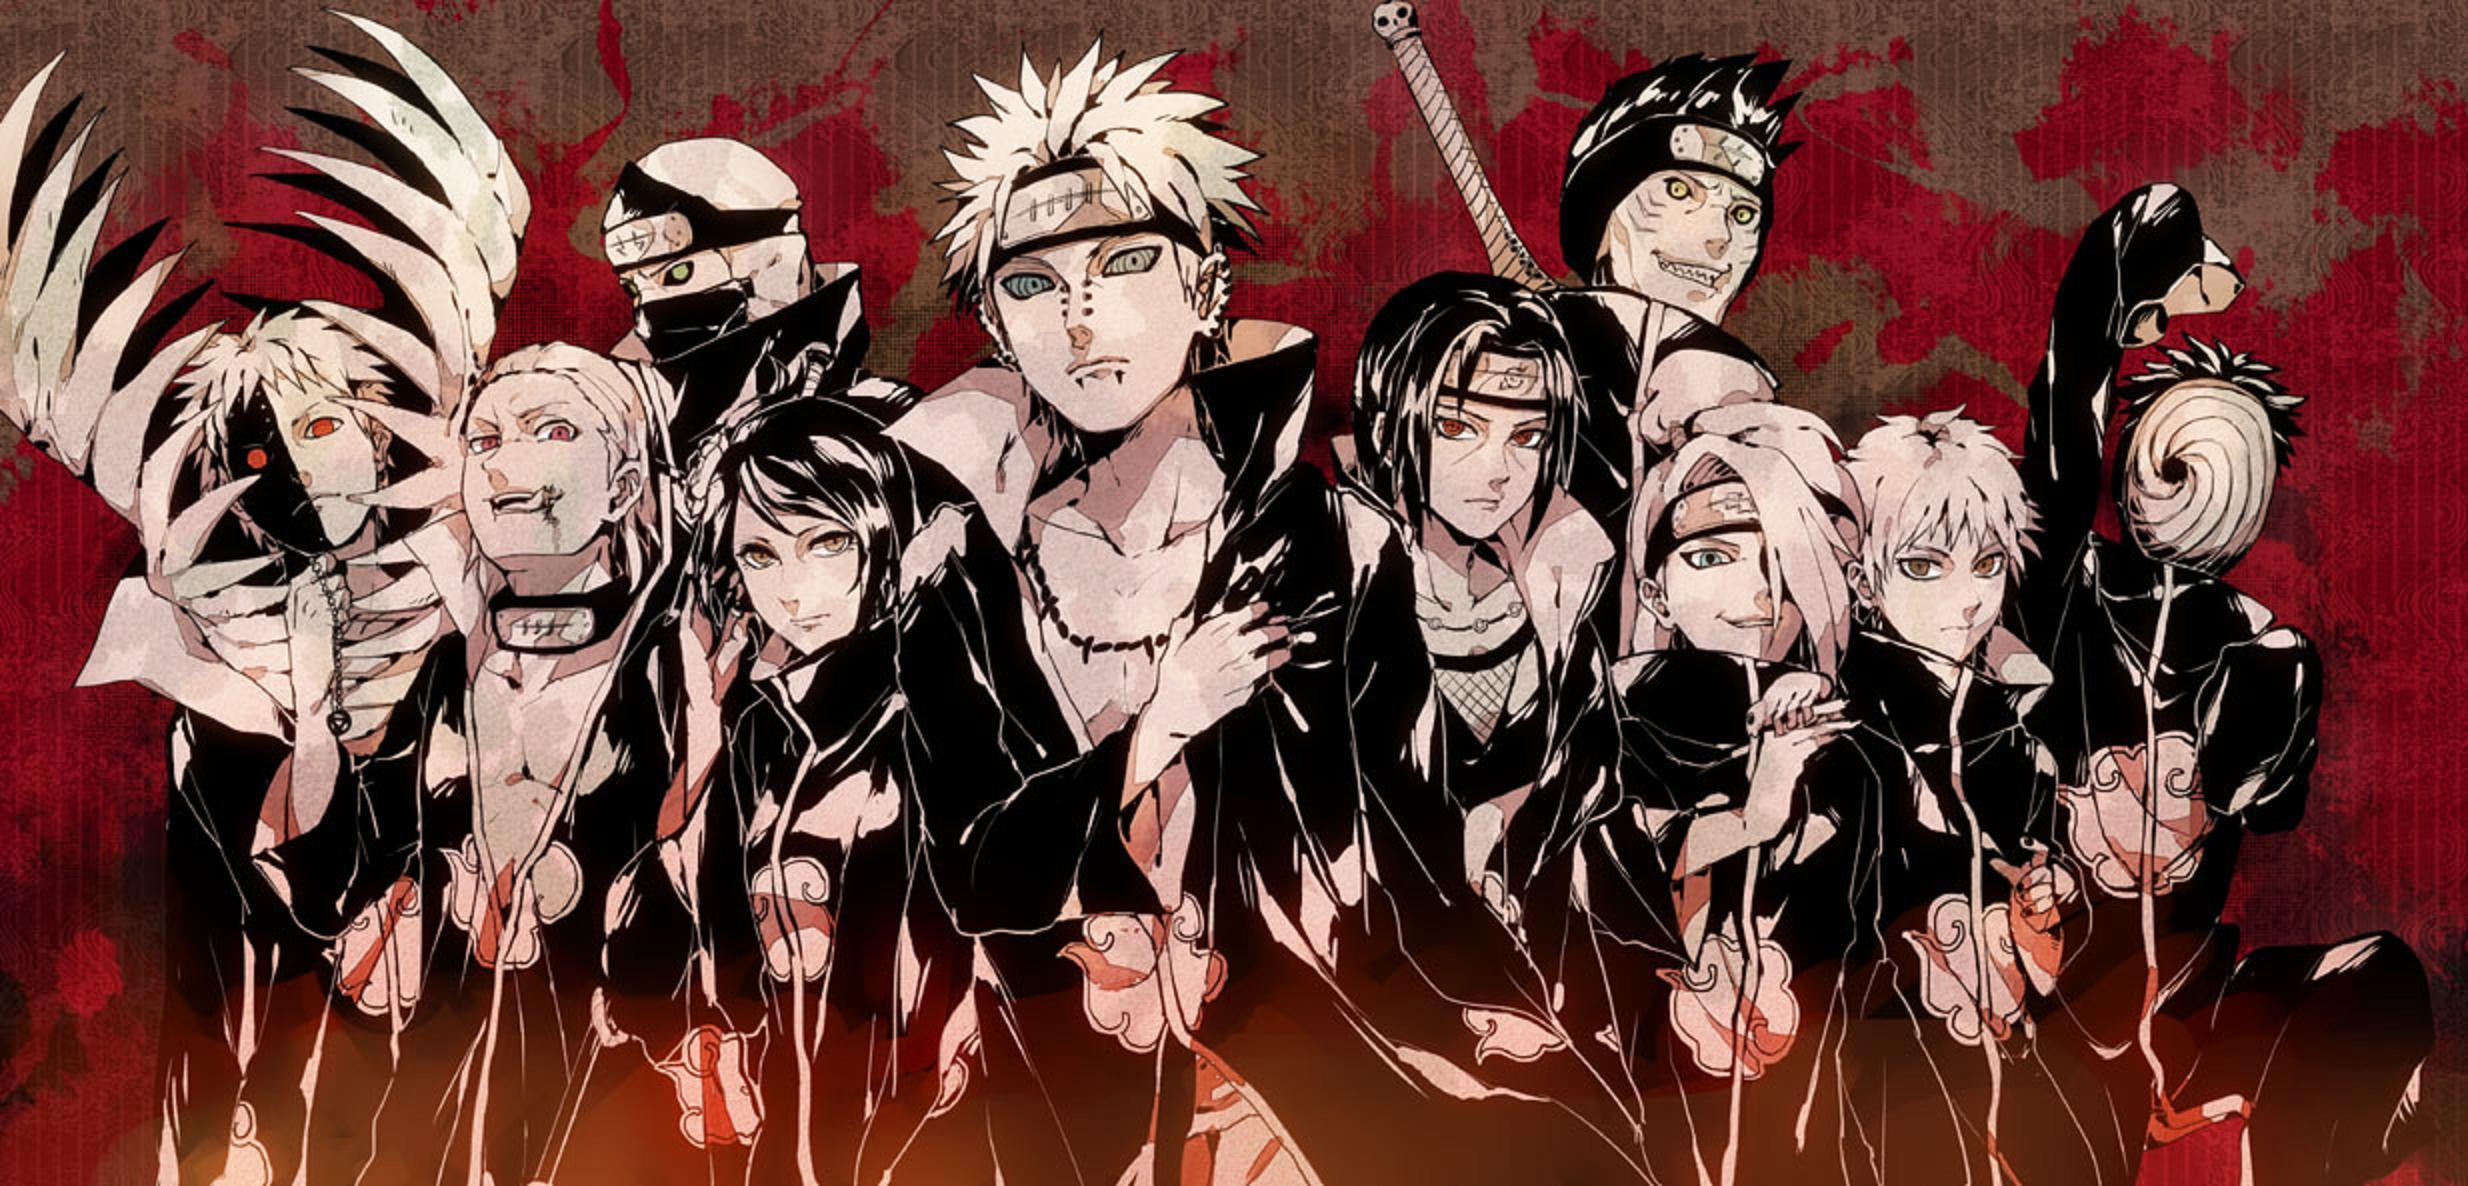 Naruto Akatsuki Wallpapers Top Free Naruto Akatsuki Backgrounds Wallpaperaccess